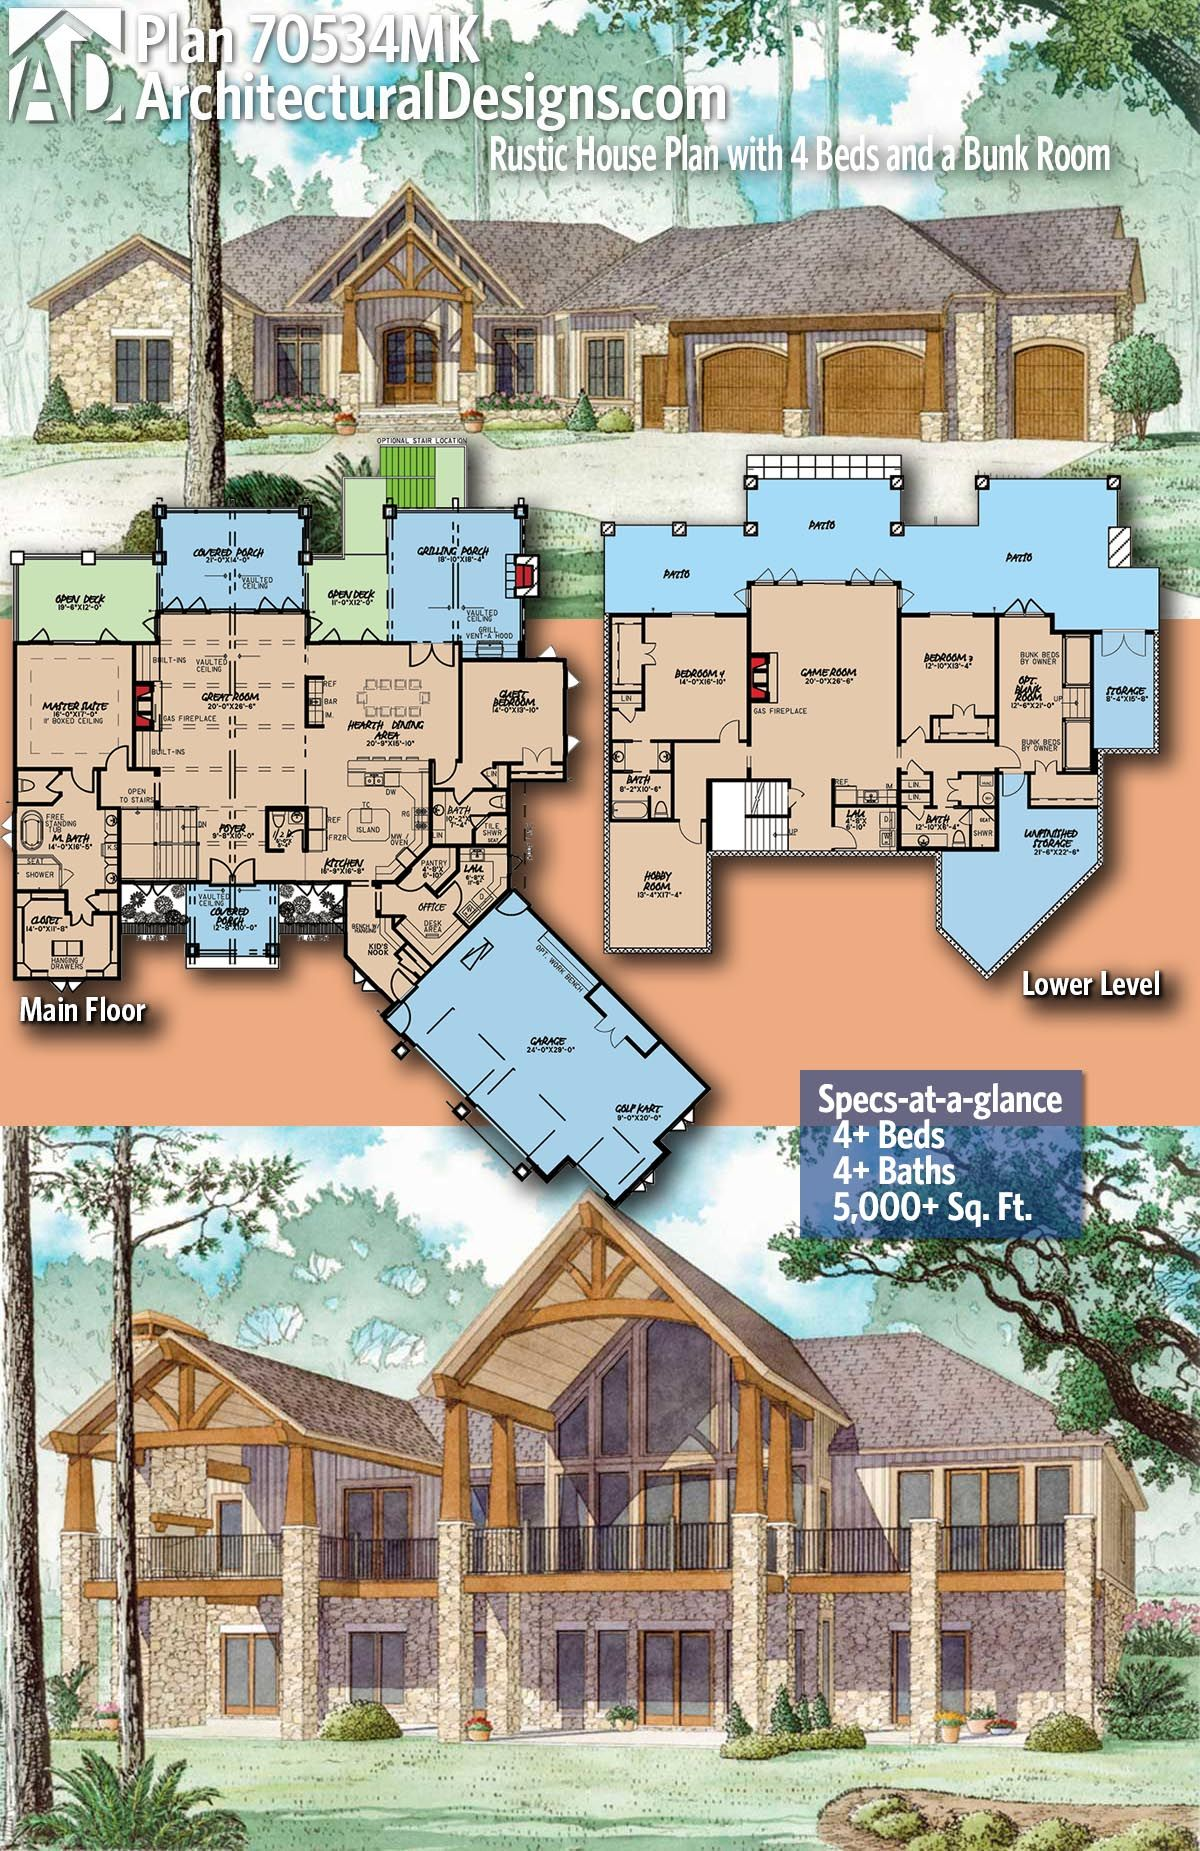 Plan 70534MK: Rustic House Plan with 4 Beds and a Bunk Room | House on 2000 sq ft house plans, 3800 sq ft house plans, 3400 sq ft house plans, 6000 sq ft house plans, 14000 sq ft house plans, 3100 sq ft house plans, 3000 sq ft house plans, 60000 sq ft house plans, 30000 sq ft house plans, 5250 sq ft house plans, 6500 sq ft house plans, 2250 sq ft house plans, 4000 sq ft house plans, 100 sq ft house plans, 25000 sq ft house plans, 1200 sq ft house plans, 1000 sq ft house plans, 4800 sq ft house plans, 50000 sq ft house plans, 8000 sq ft house plans,